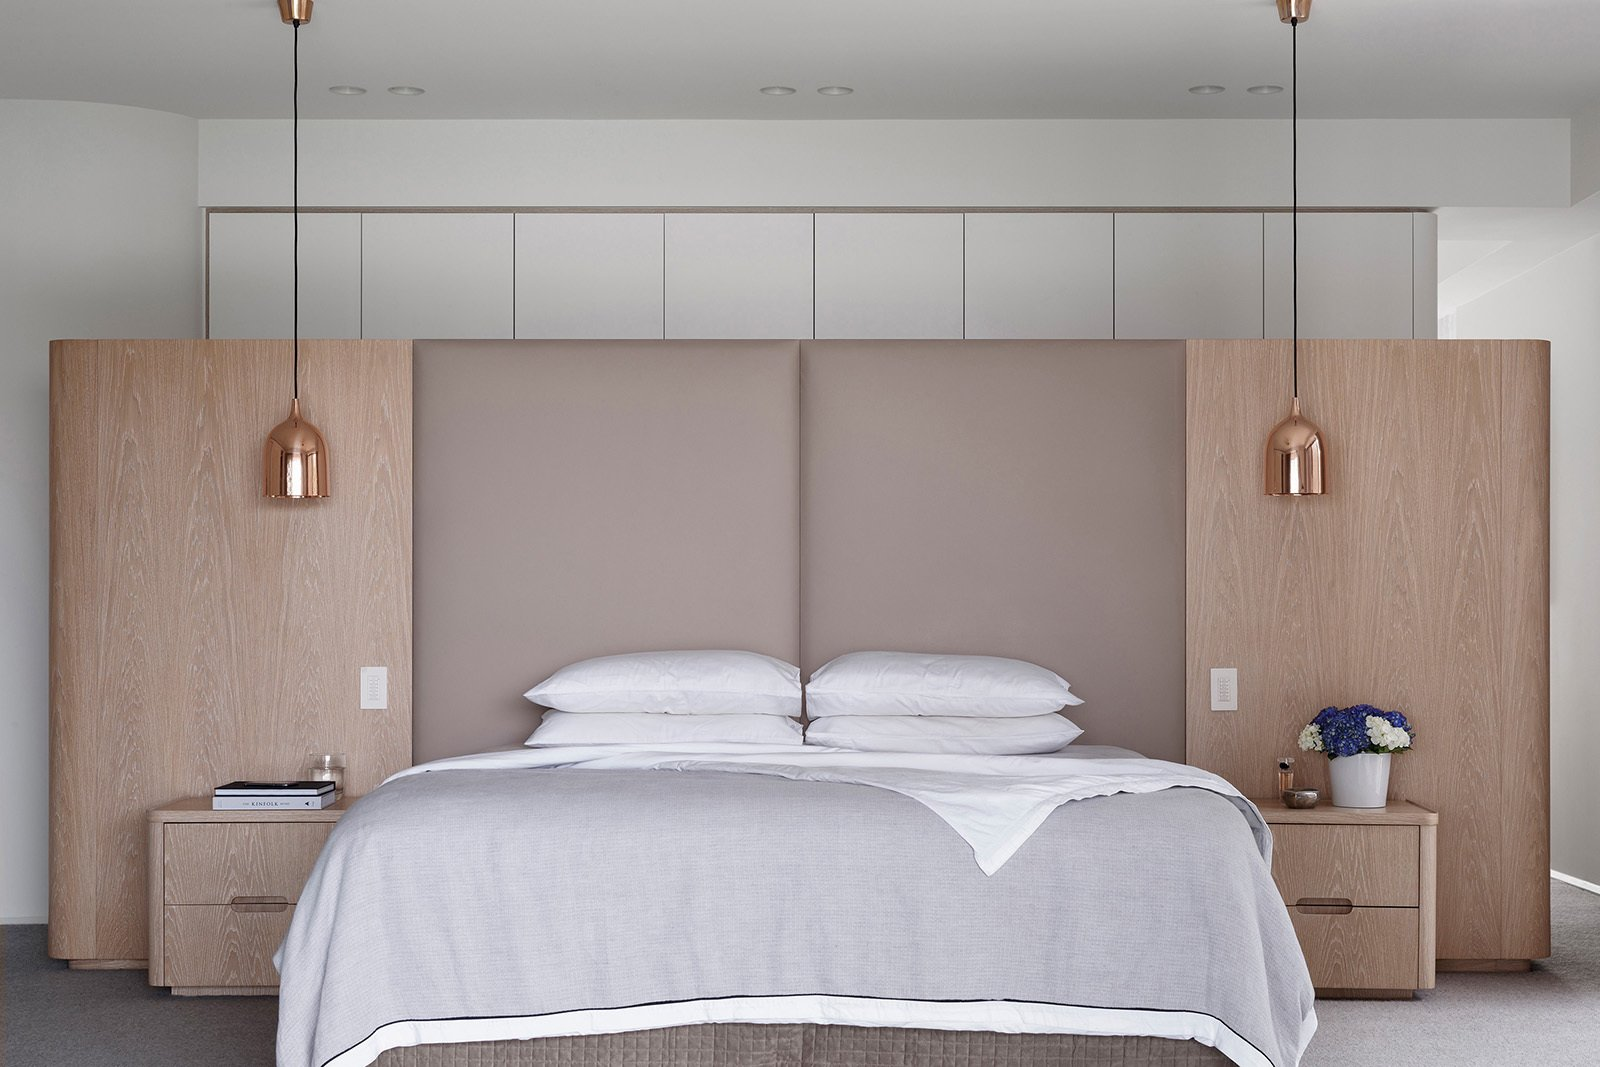 50 Bright Ideas For Bedroom Ceiling Lighting Dwell